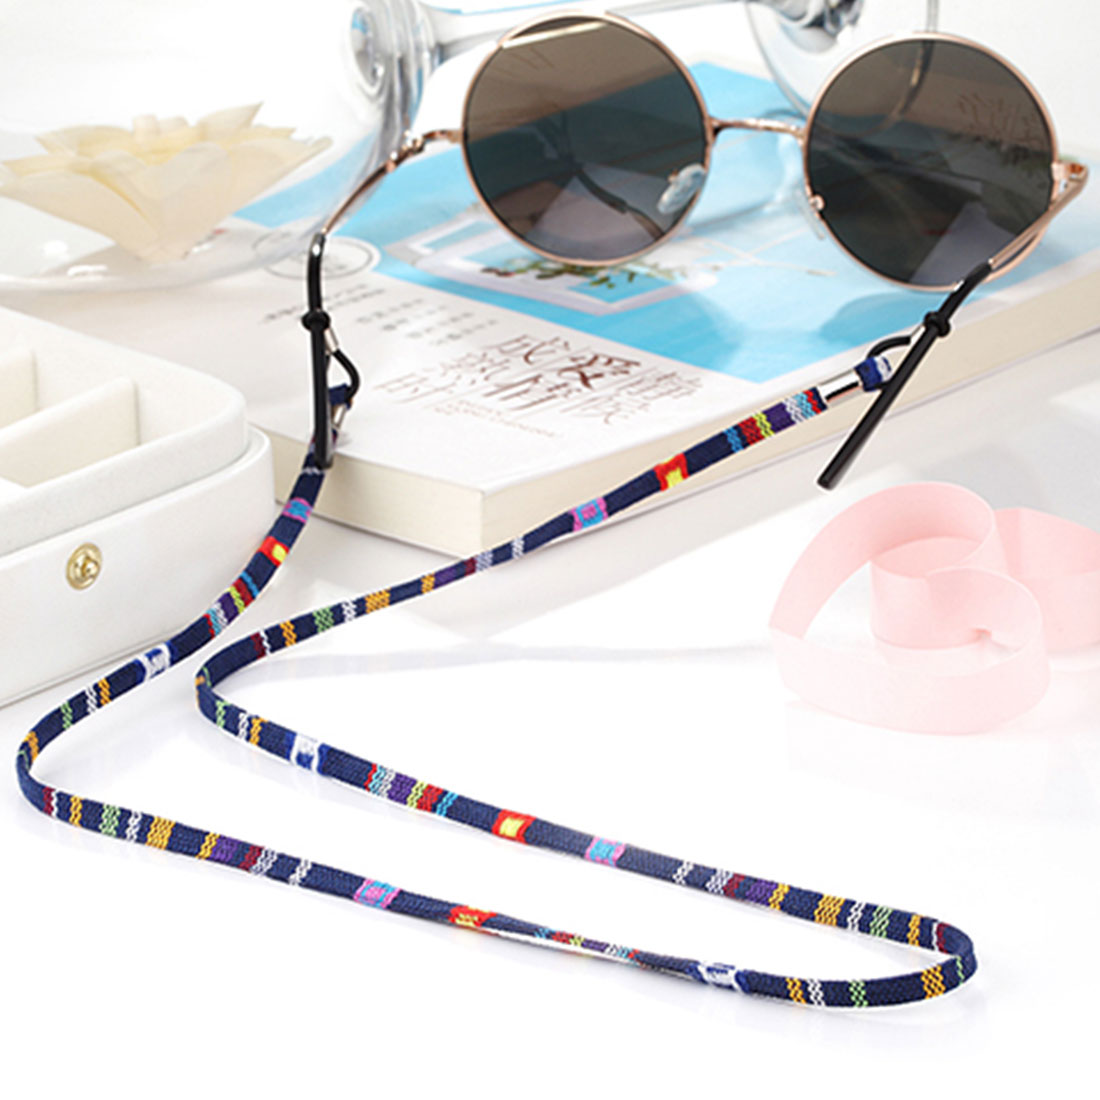 1Pc 6 Colors New Leather Eyeglass Cord Adjustable End Glasses Holder Colorful Leather Glasses Neck Strap String Rope Band